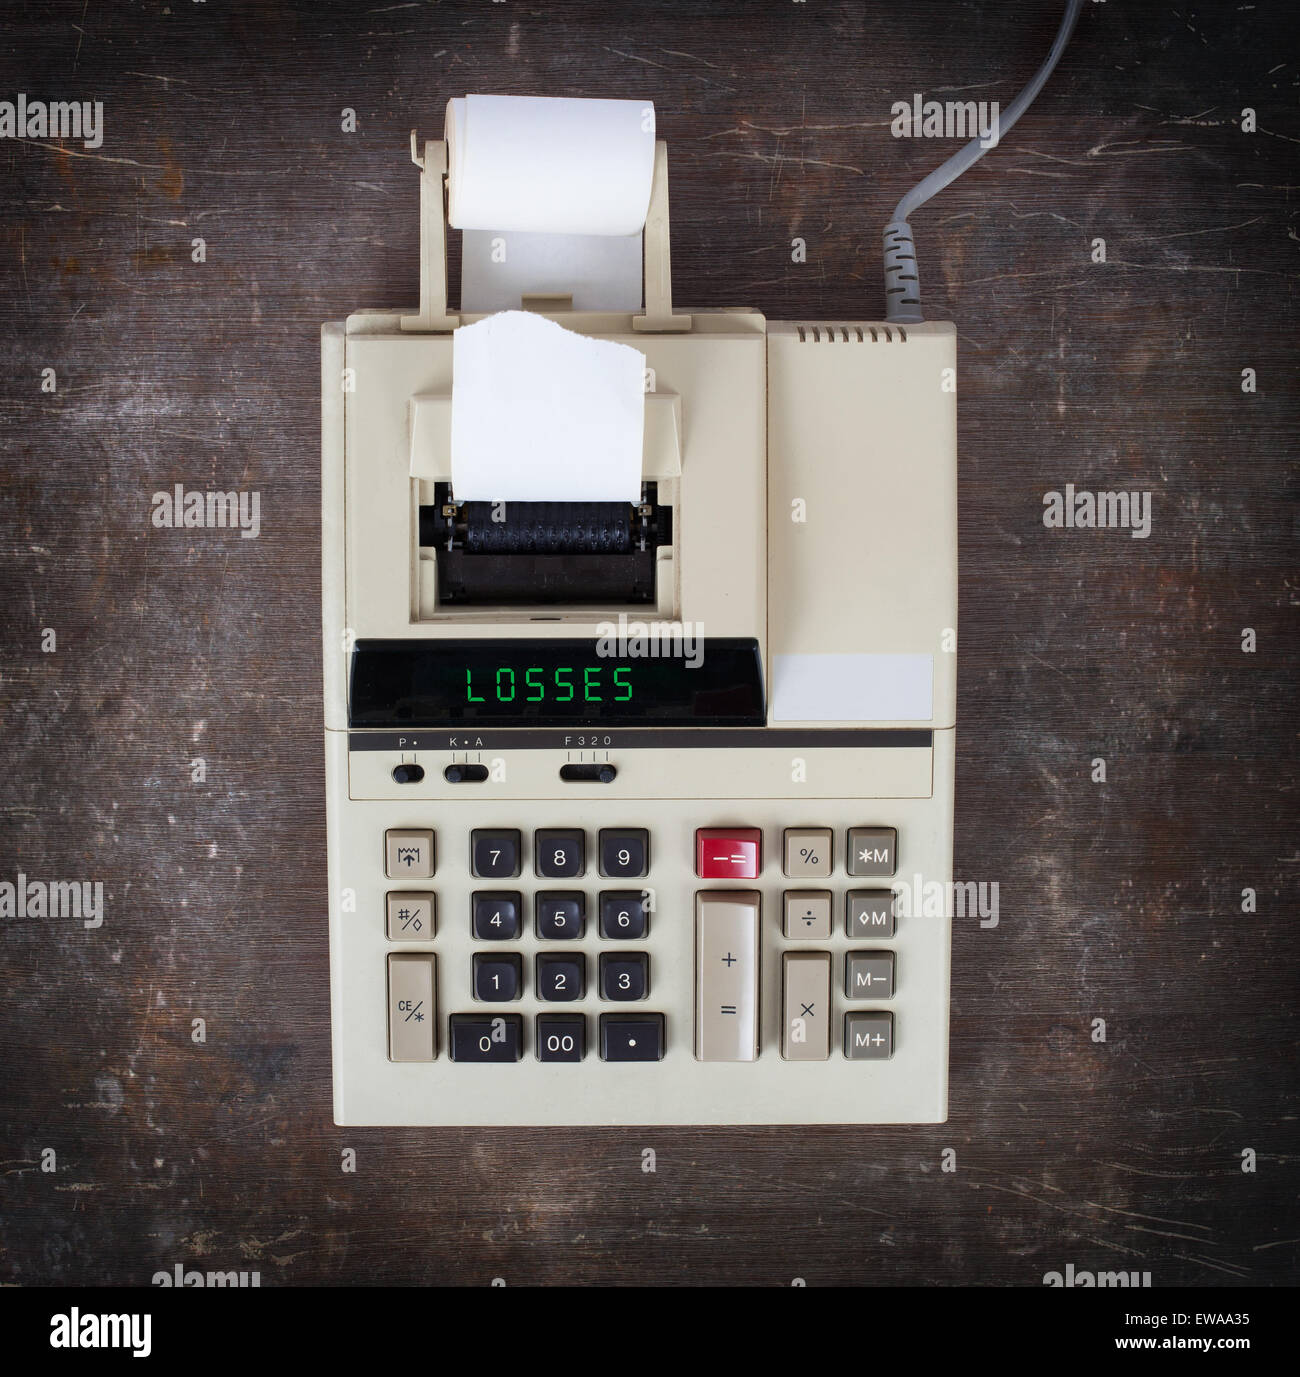 Old calculator showing a text on display - losses - Stock Image